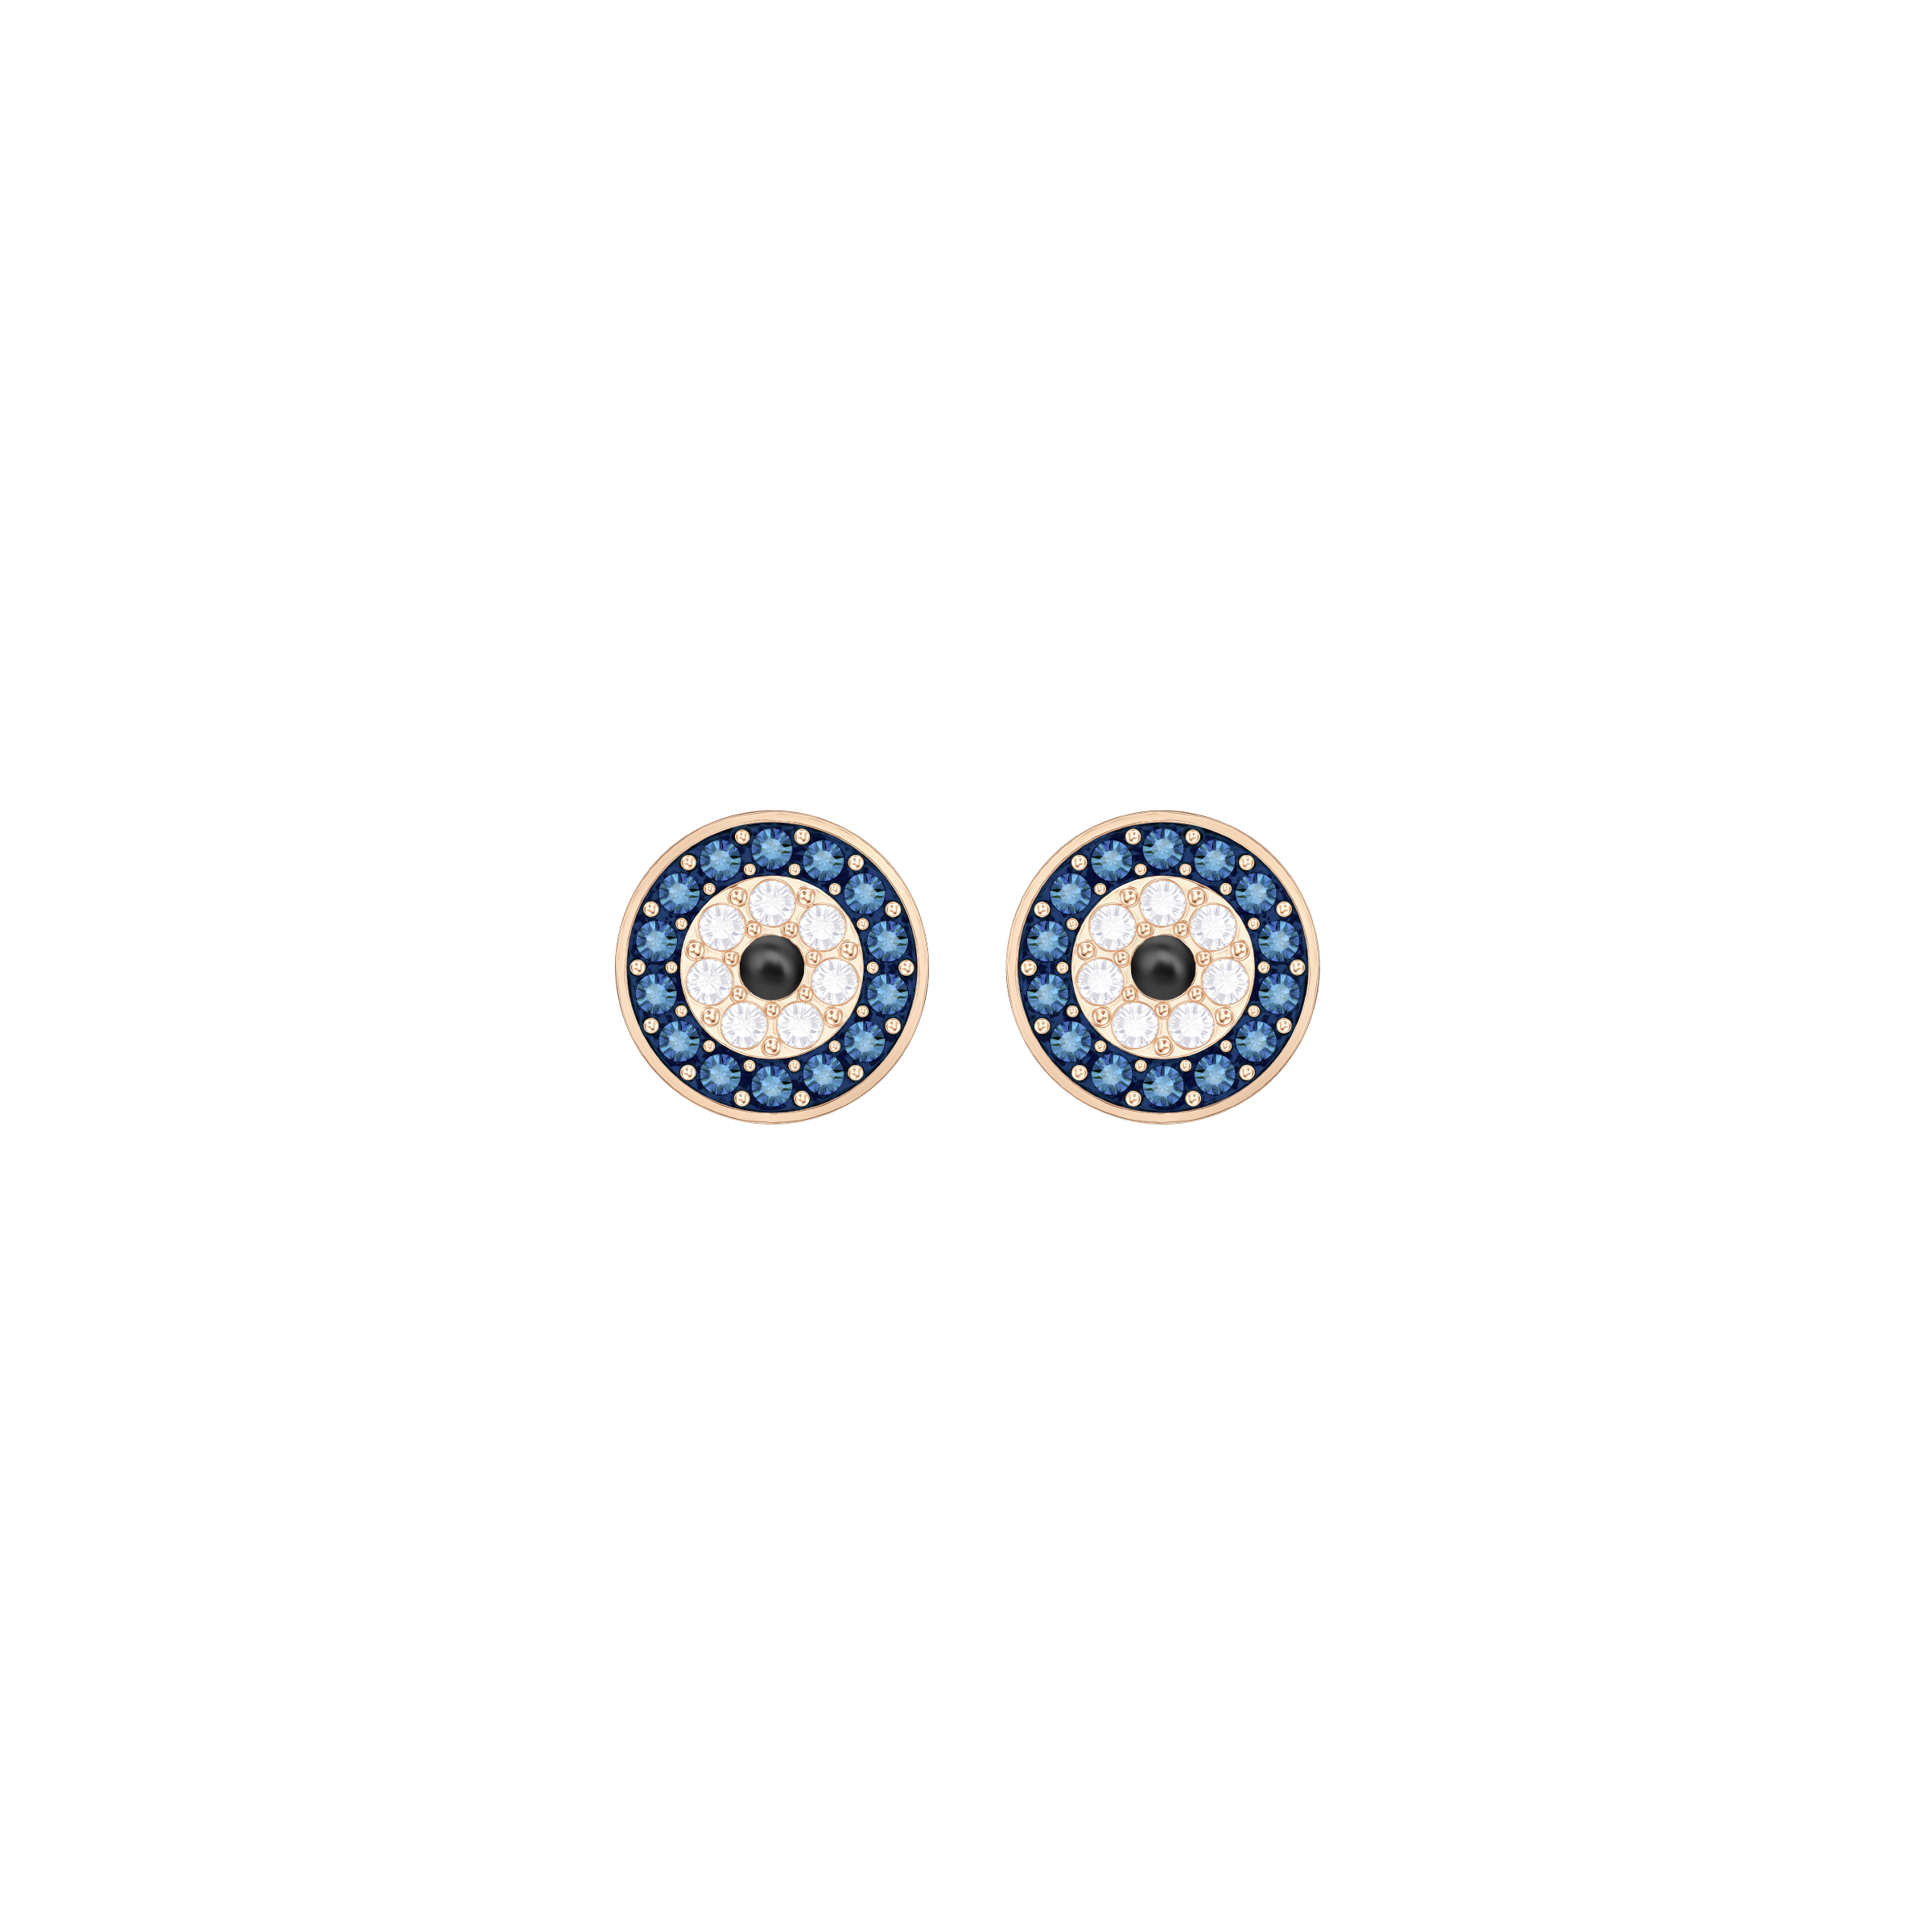 Crystal Wishes Evil Eye Pierced Earrings, Multi-Colored, Rose Gold Plating